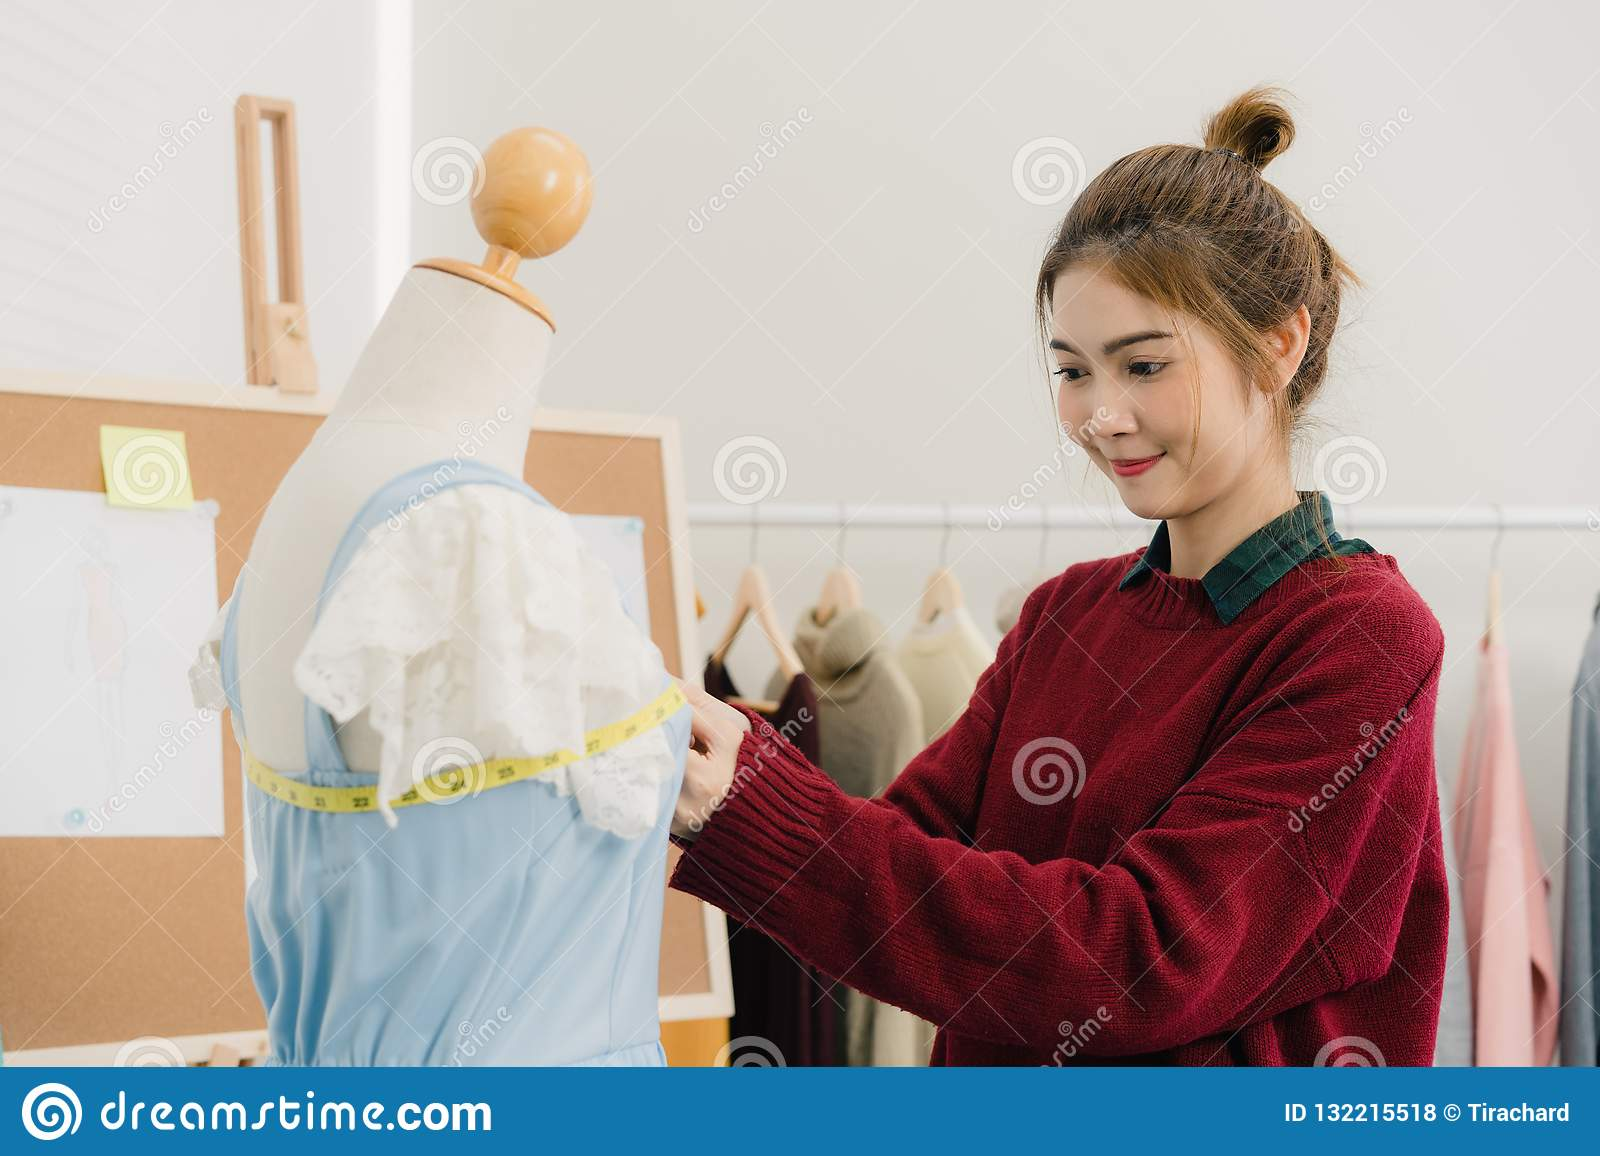 1 093 Asian Dress Fashion Mannequin Photos Free Royalty Free Stock Photos From Dreamstime